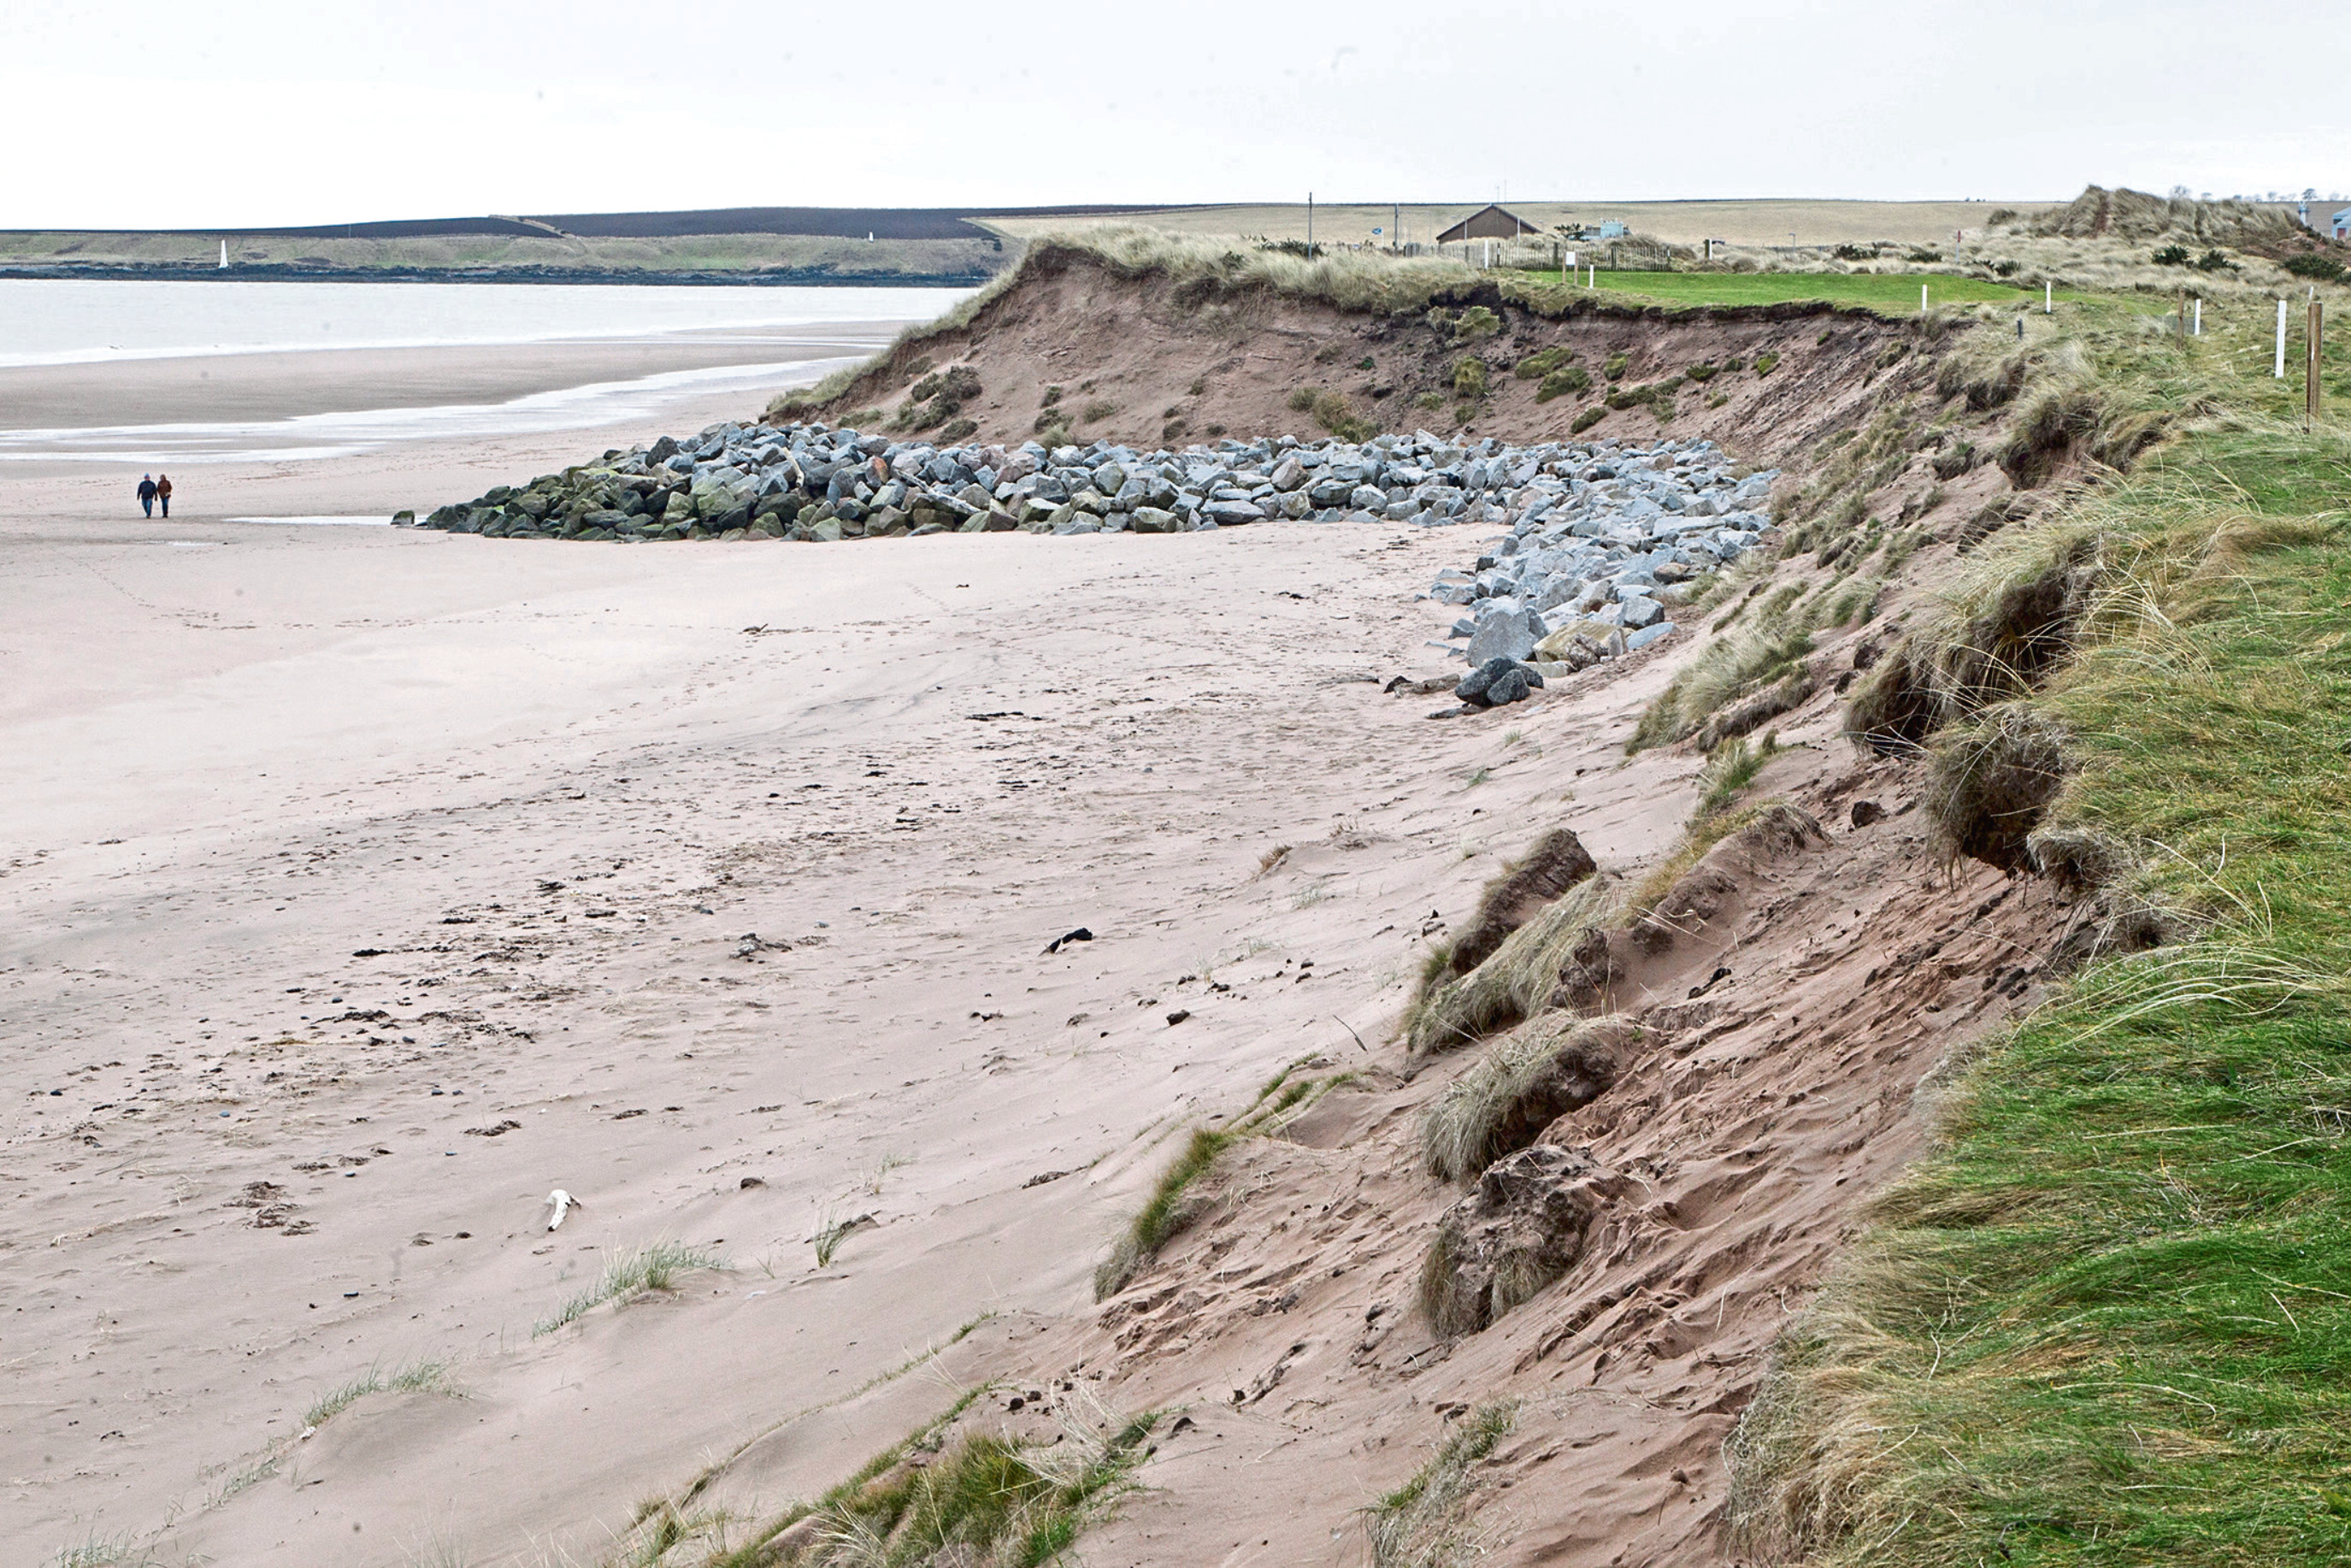 Montrose has been singled out as an example of the threat of climate change to the future of links golf in Scotland. The newly-published Game Changer report suggests golf in Scotland being perhaps the hardest-hit sector as a result of climate-related increases in precipitation as well as coastal erosion arising from storm surges and rising sea levels. For more than 450 years golf has been played on the links of Montrose but changing seas and coastal erosion is threatening to destroy part of the course which can boast features laid down by Old Tom Morris.   Pic shows looking along the 2nd fairway back to the tee at  Montrose Golf Links...Pic Paul Reid